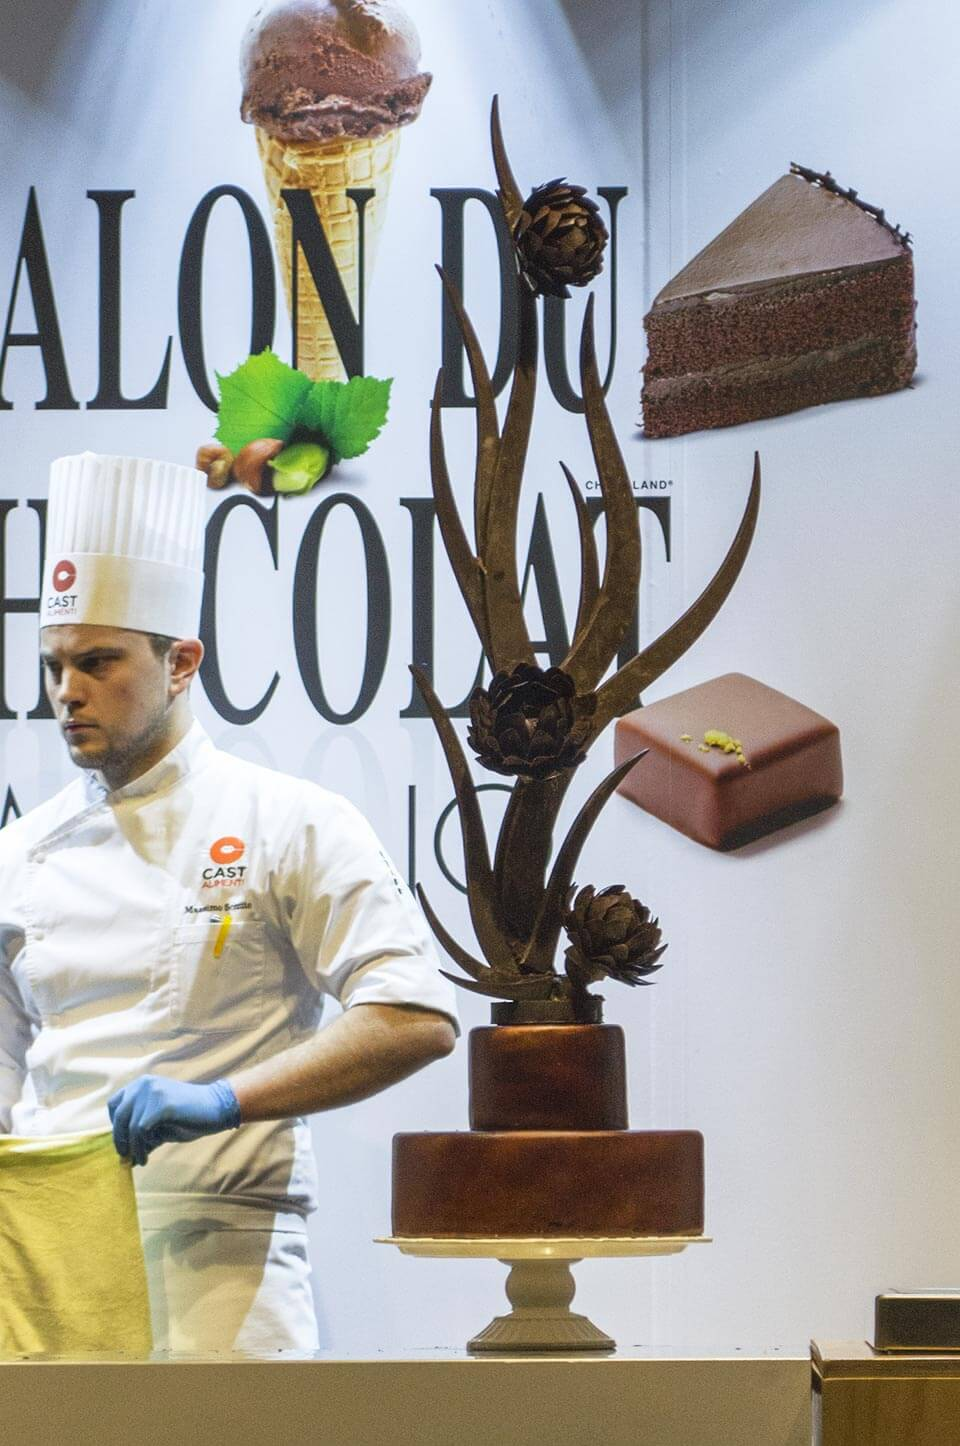 Chocolate Cake at the Salon du Chocolat Milano